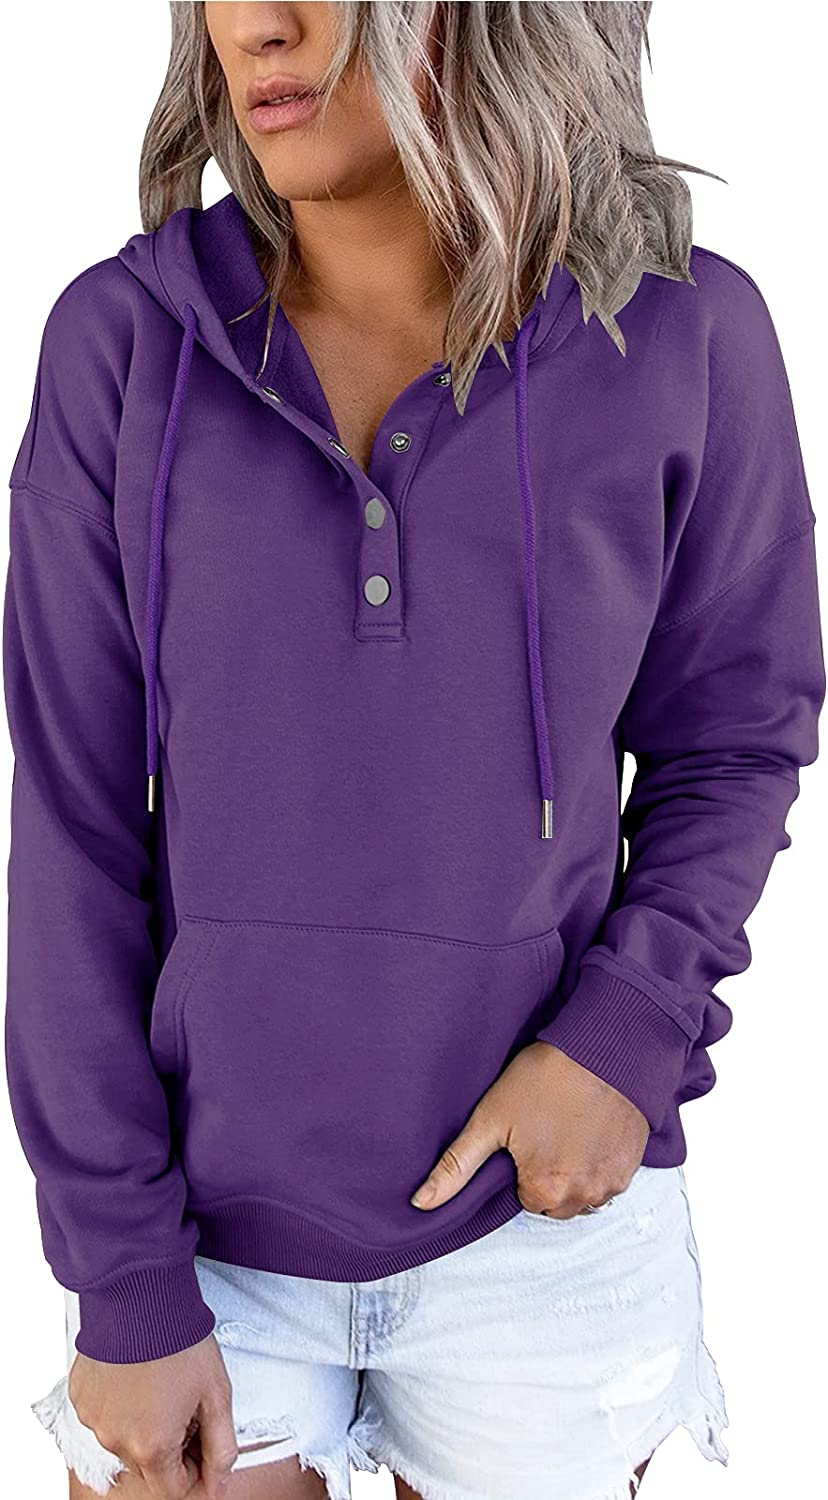 Dbtanjy Women's Hoodies Long Sleeve Tunic Tops Sweatshirts Pullover Button up Blouse with Pocket